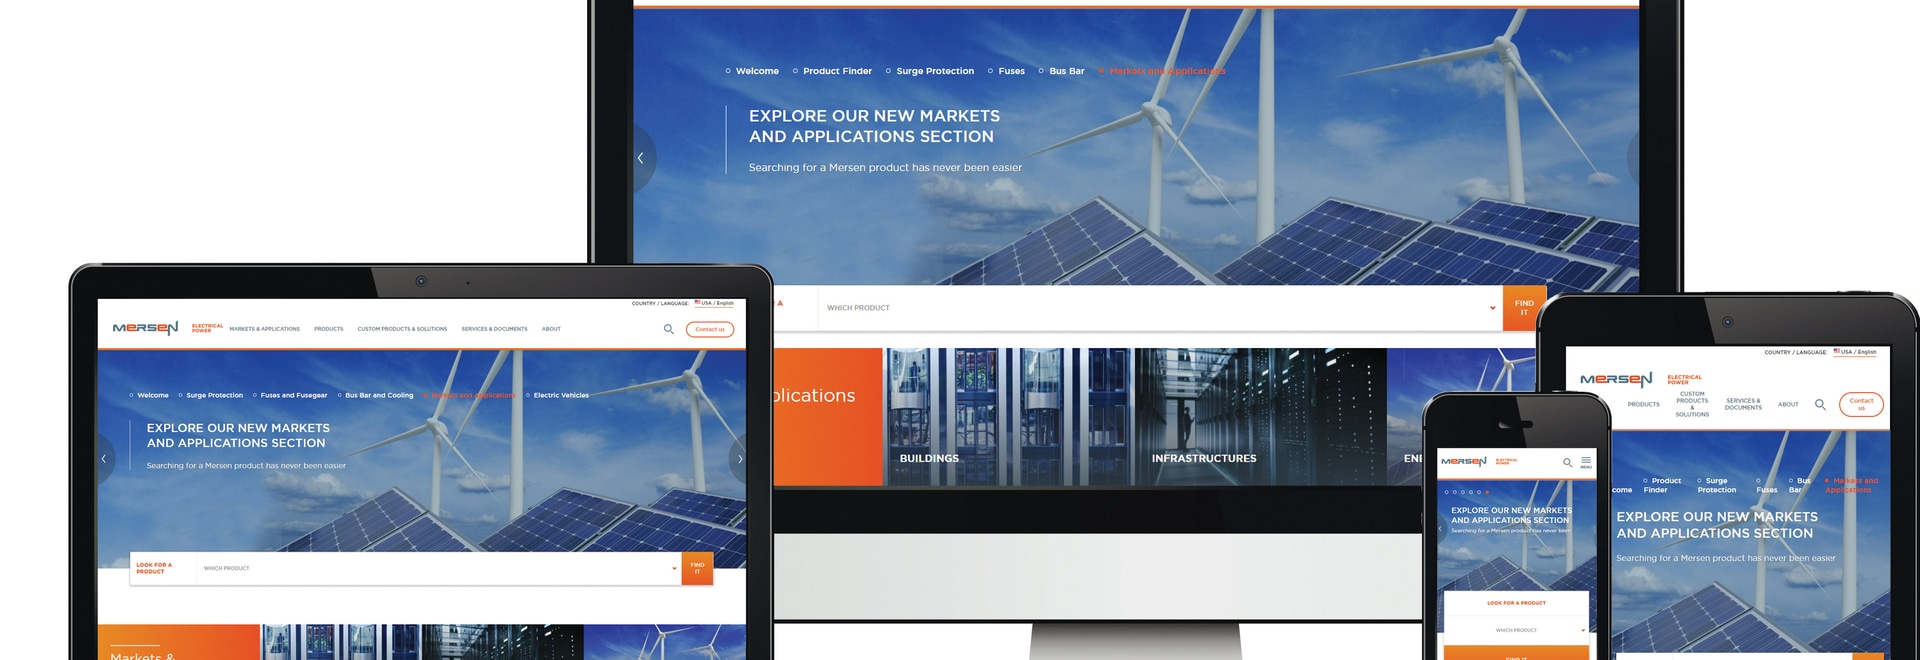 Mersen Electrical Power Announces Launch of New Global Website